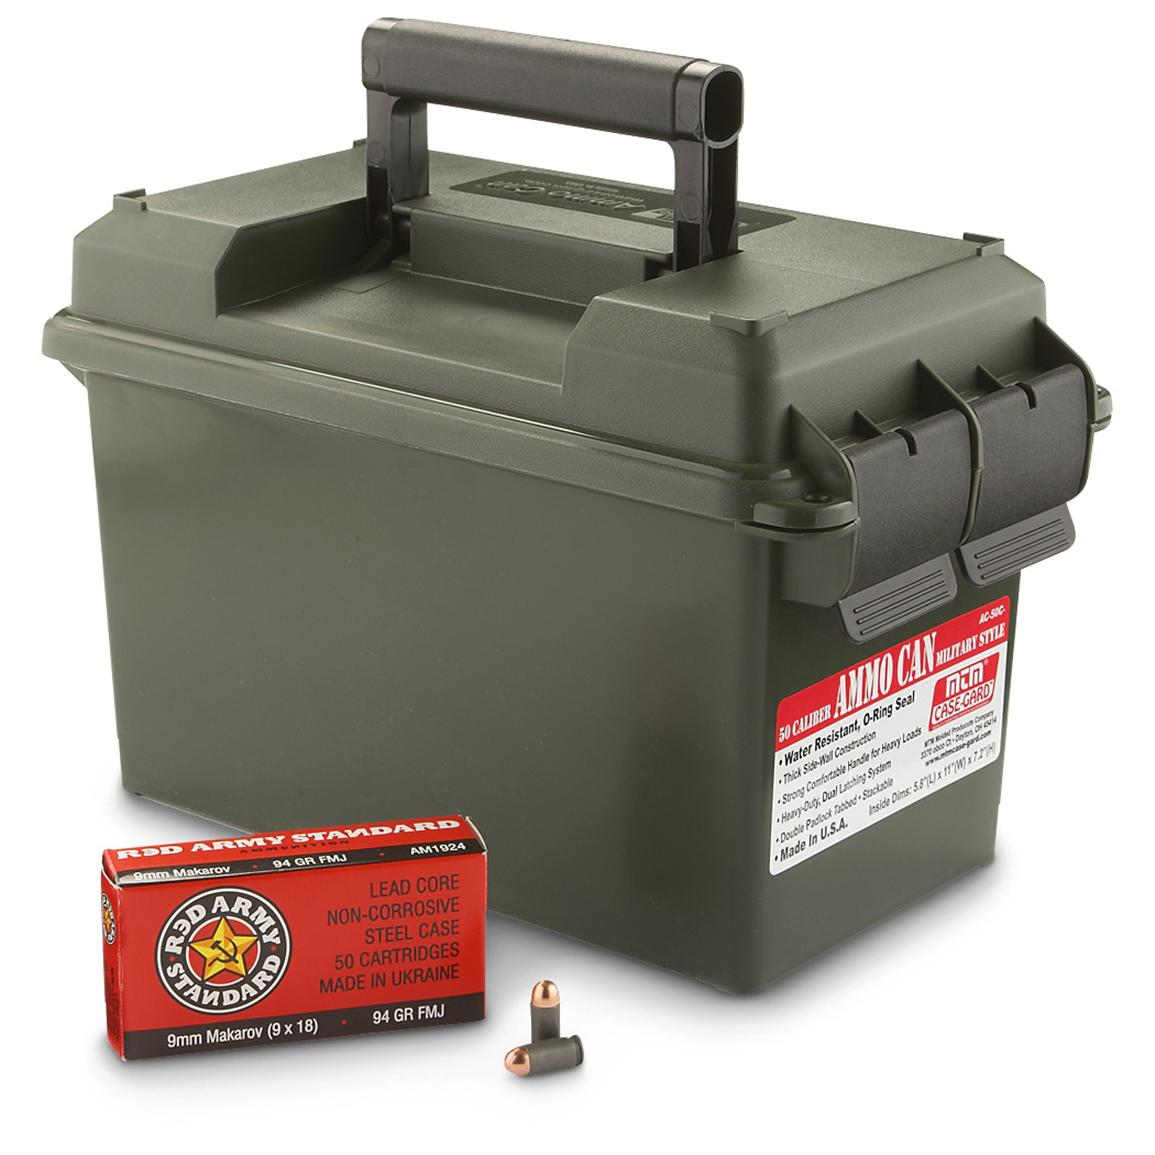 300 rds. 9mm MAK 94 Grain FMJ Ammo with Can